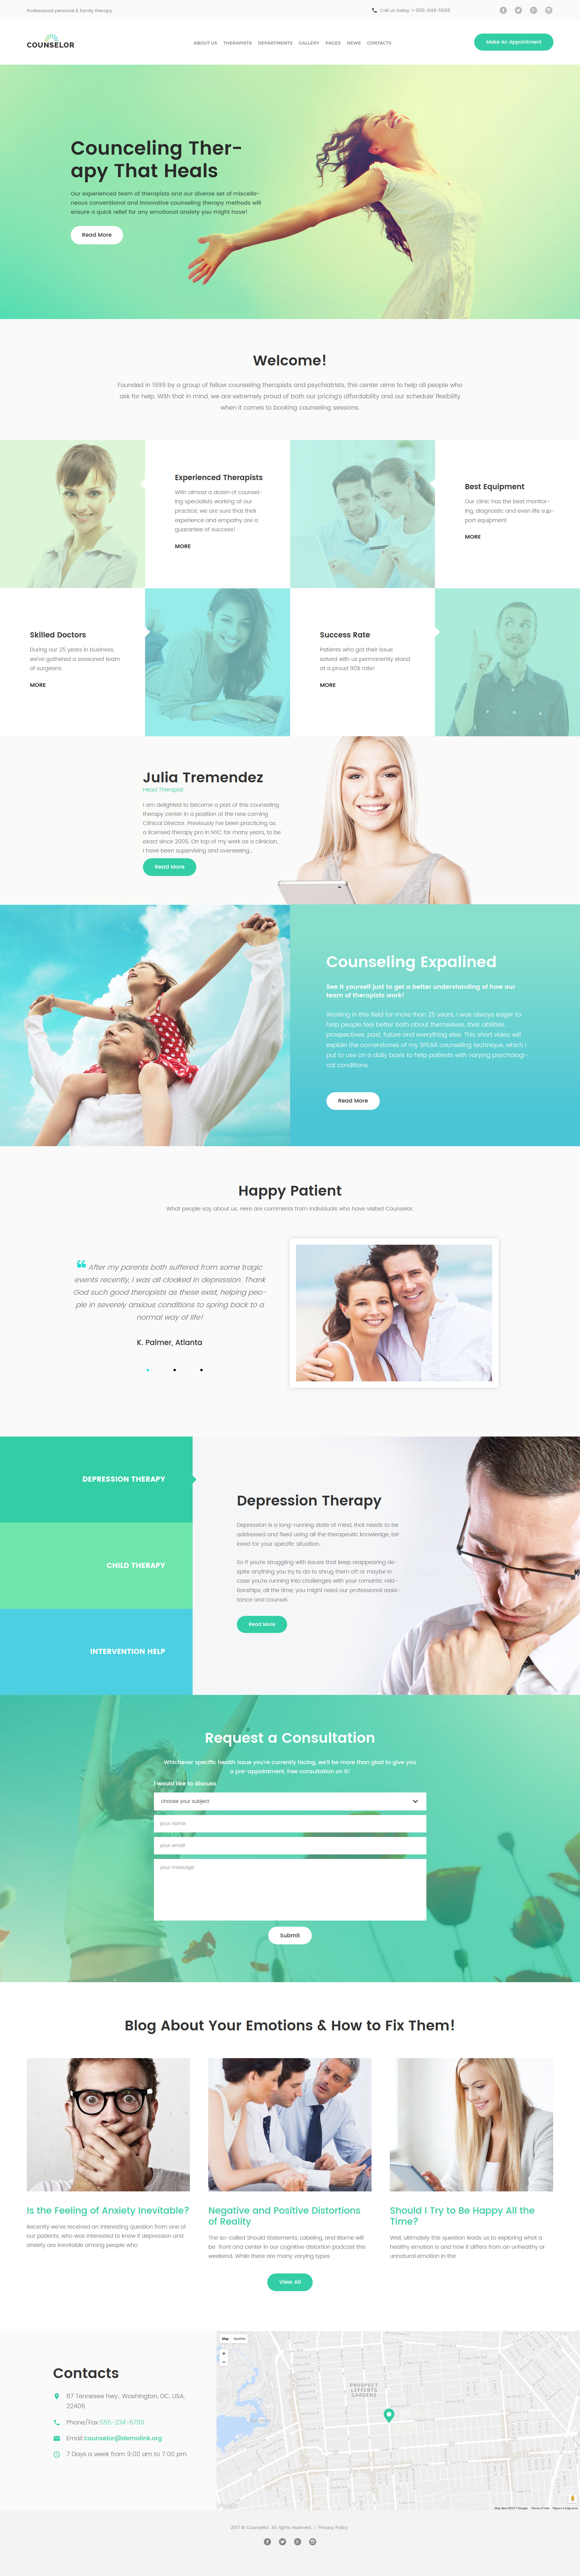 Responsywny motyw WordPress Counselor - Counseling Therapy Center Responsive #63388